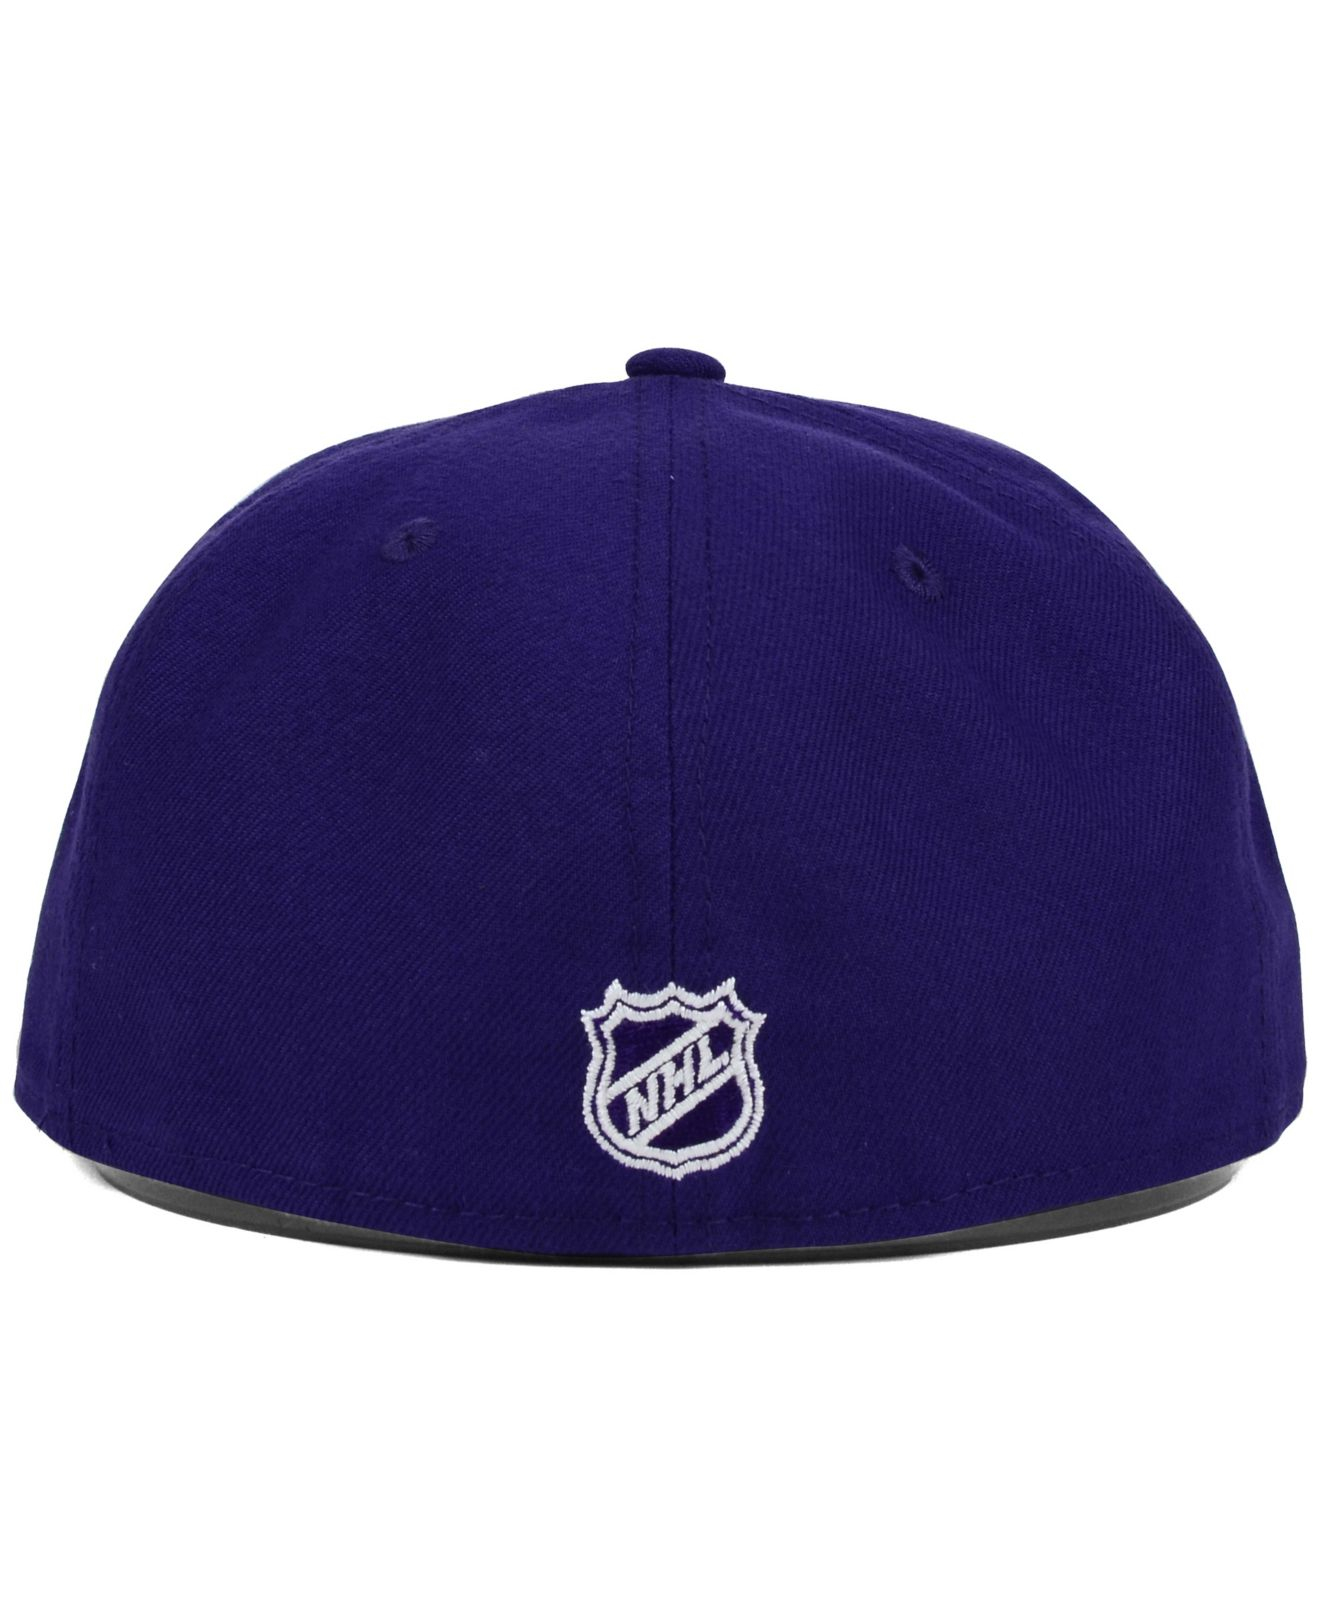 ... inexpensive lyst ktz los angeles kings c dub 59fifty cap in purple for  men 17723 fe6d9 f81bbc43074a